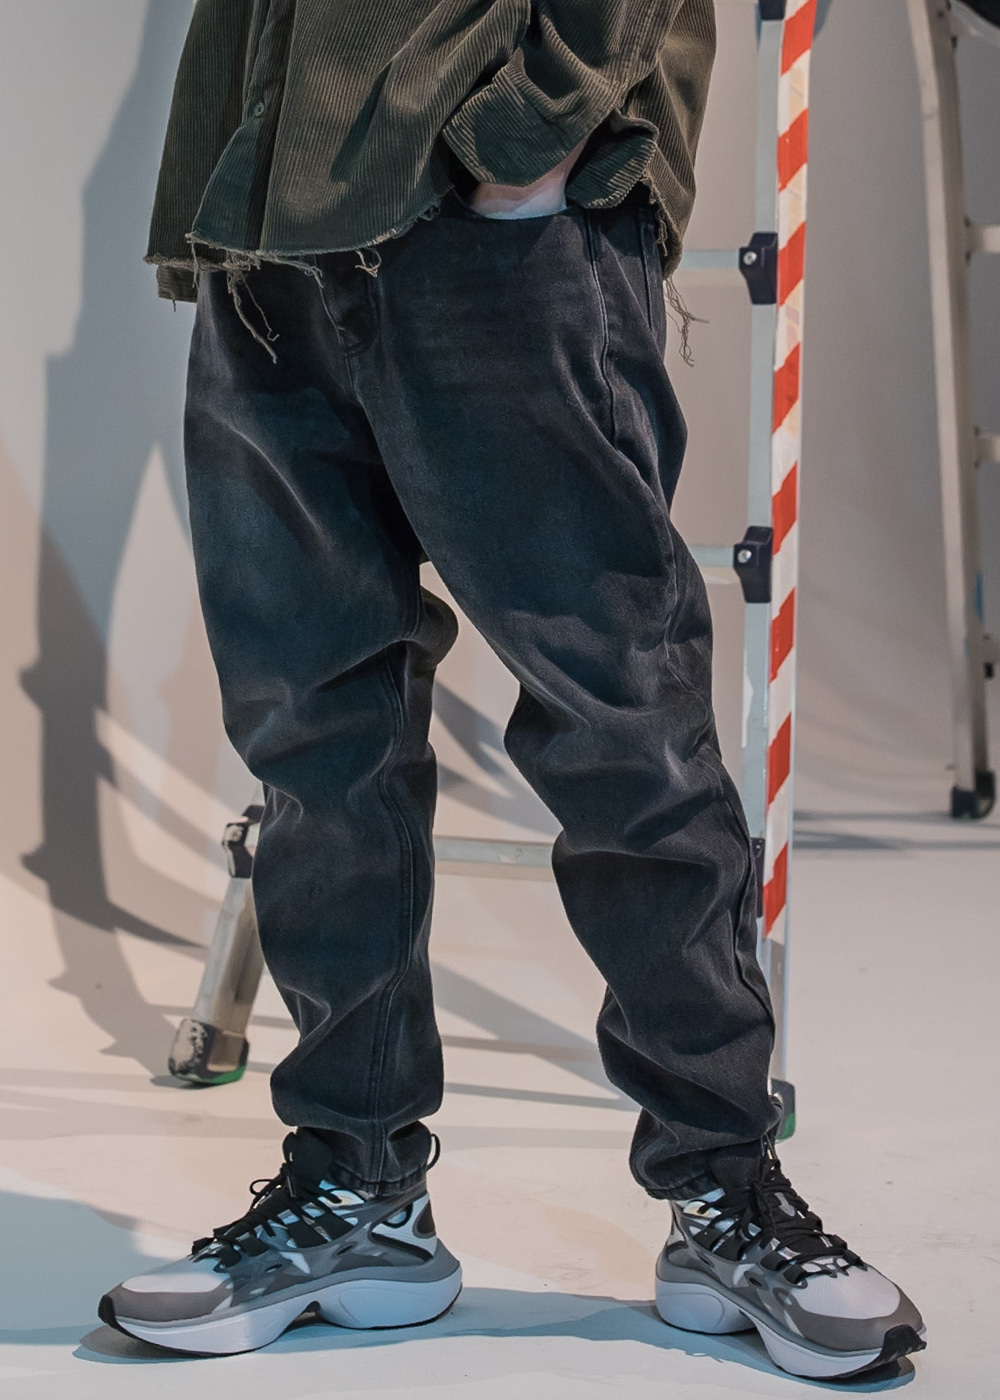 STN WASHING TAPERED DENIM PANTS MFNJP002-BK(10/18 발송예정)